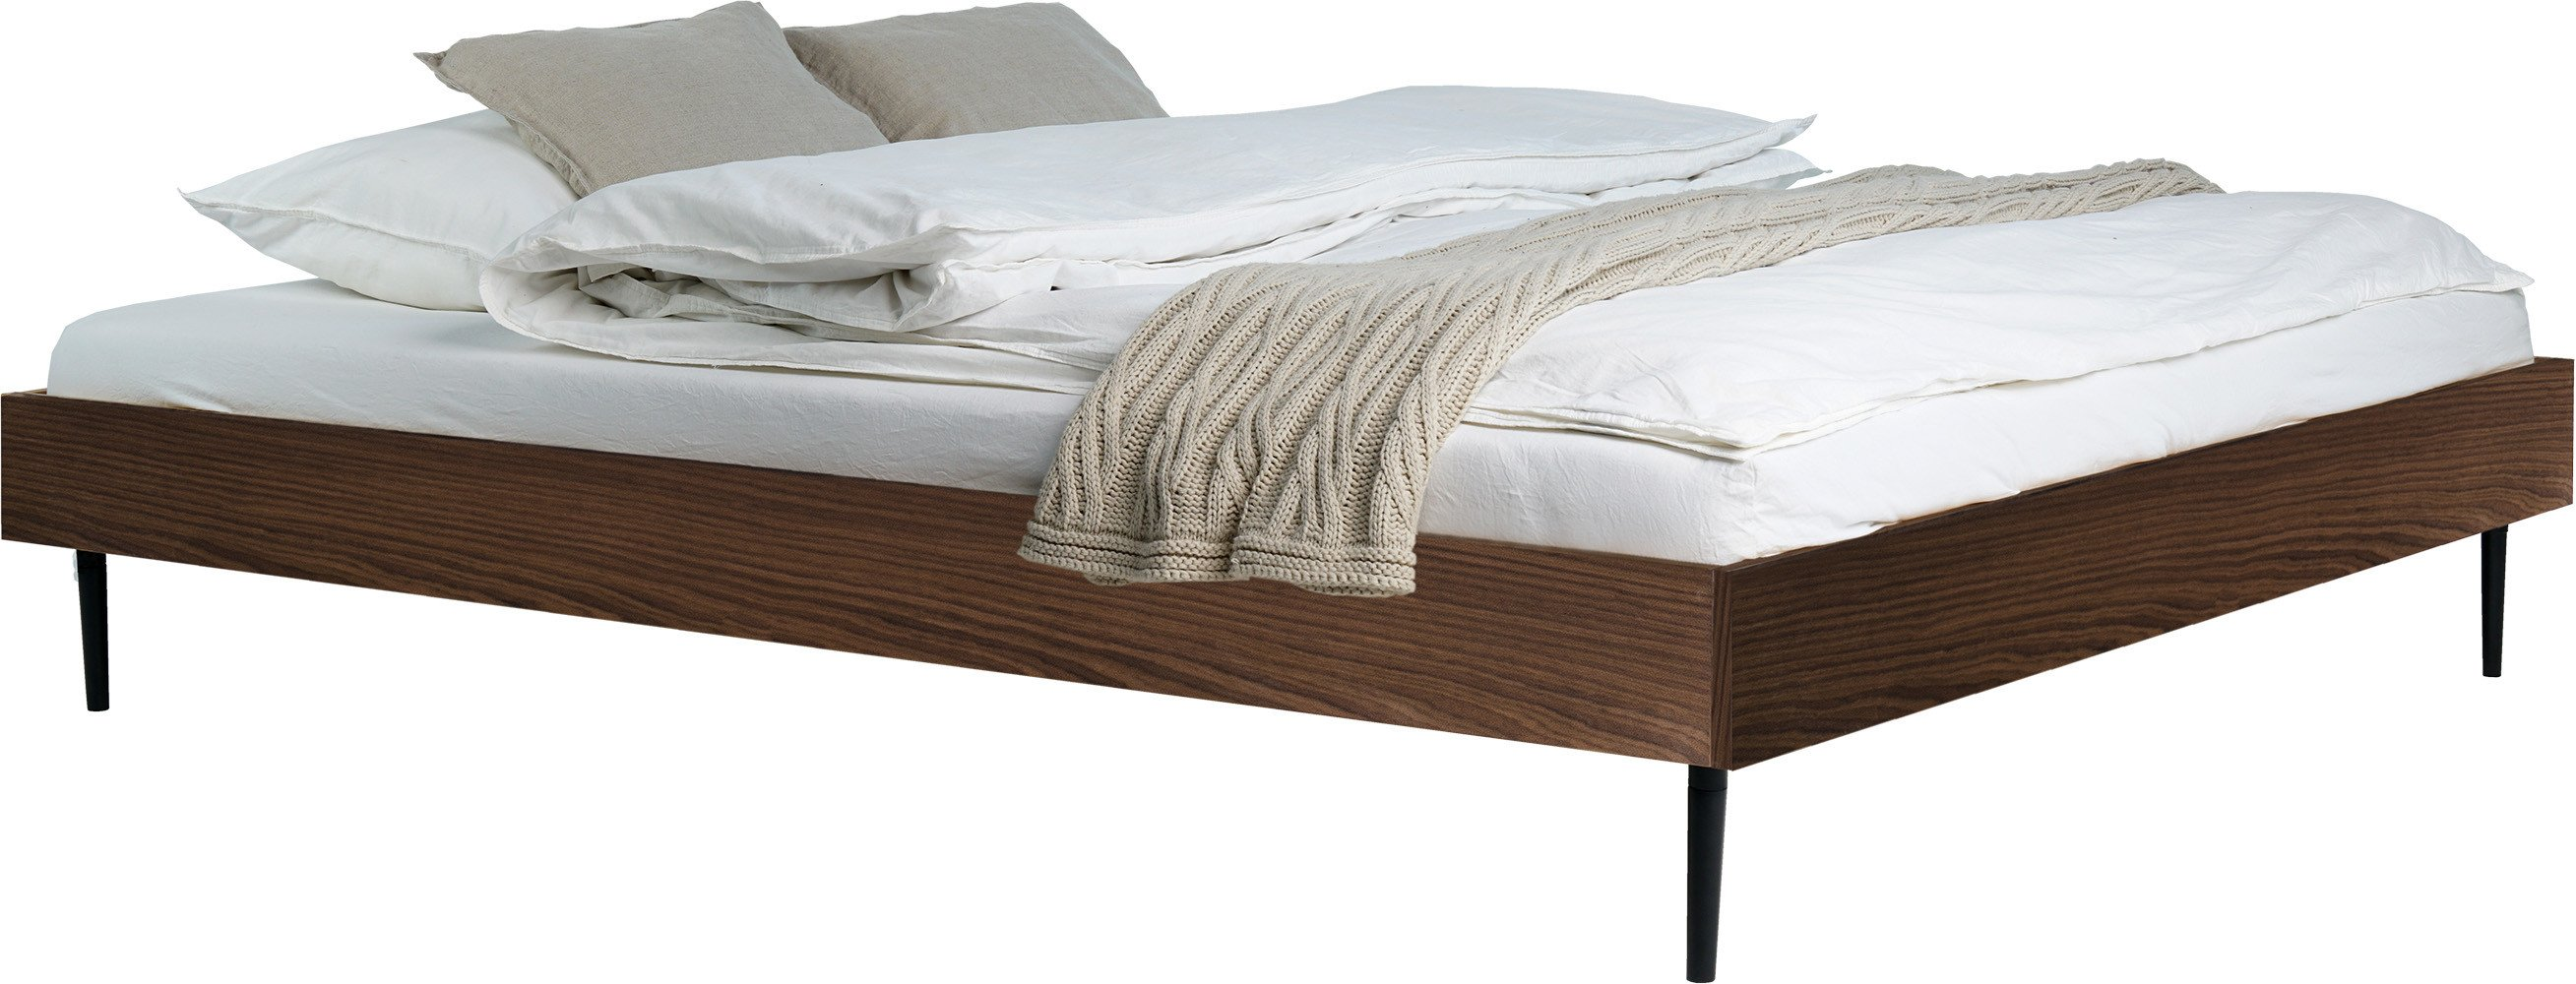 Streiko Bed 140x200 Walnut, noo.ma